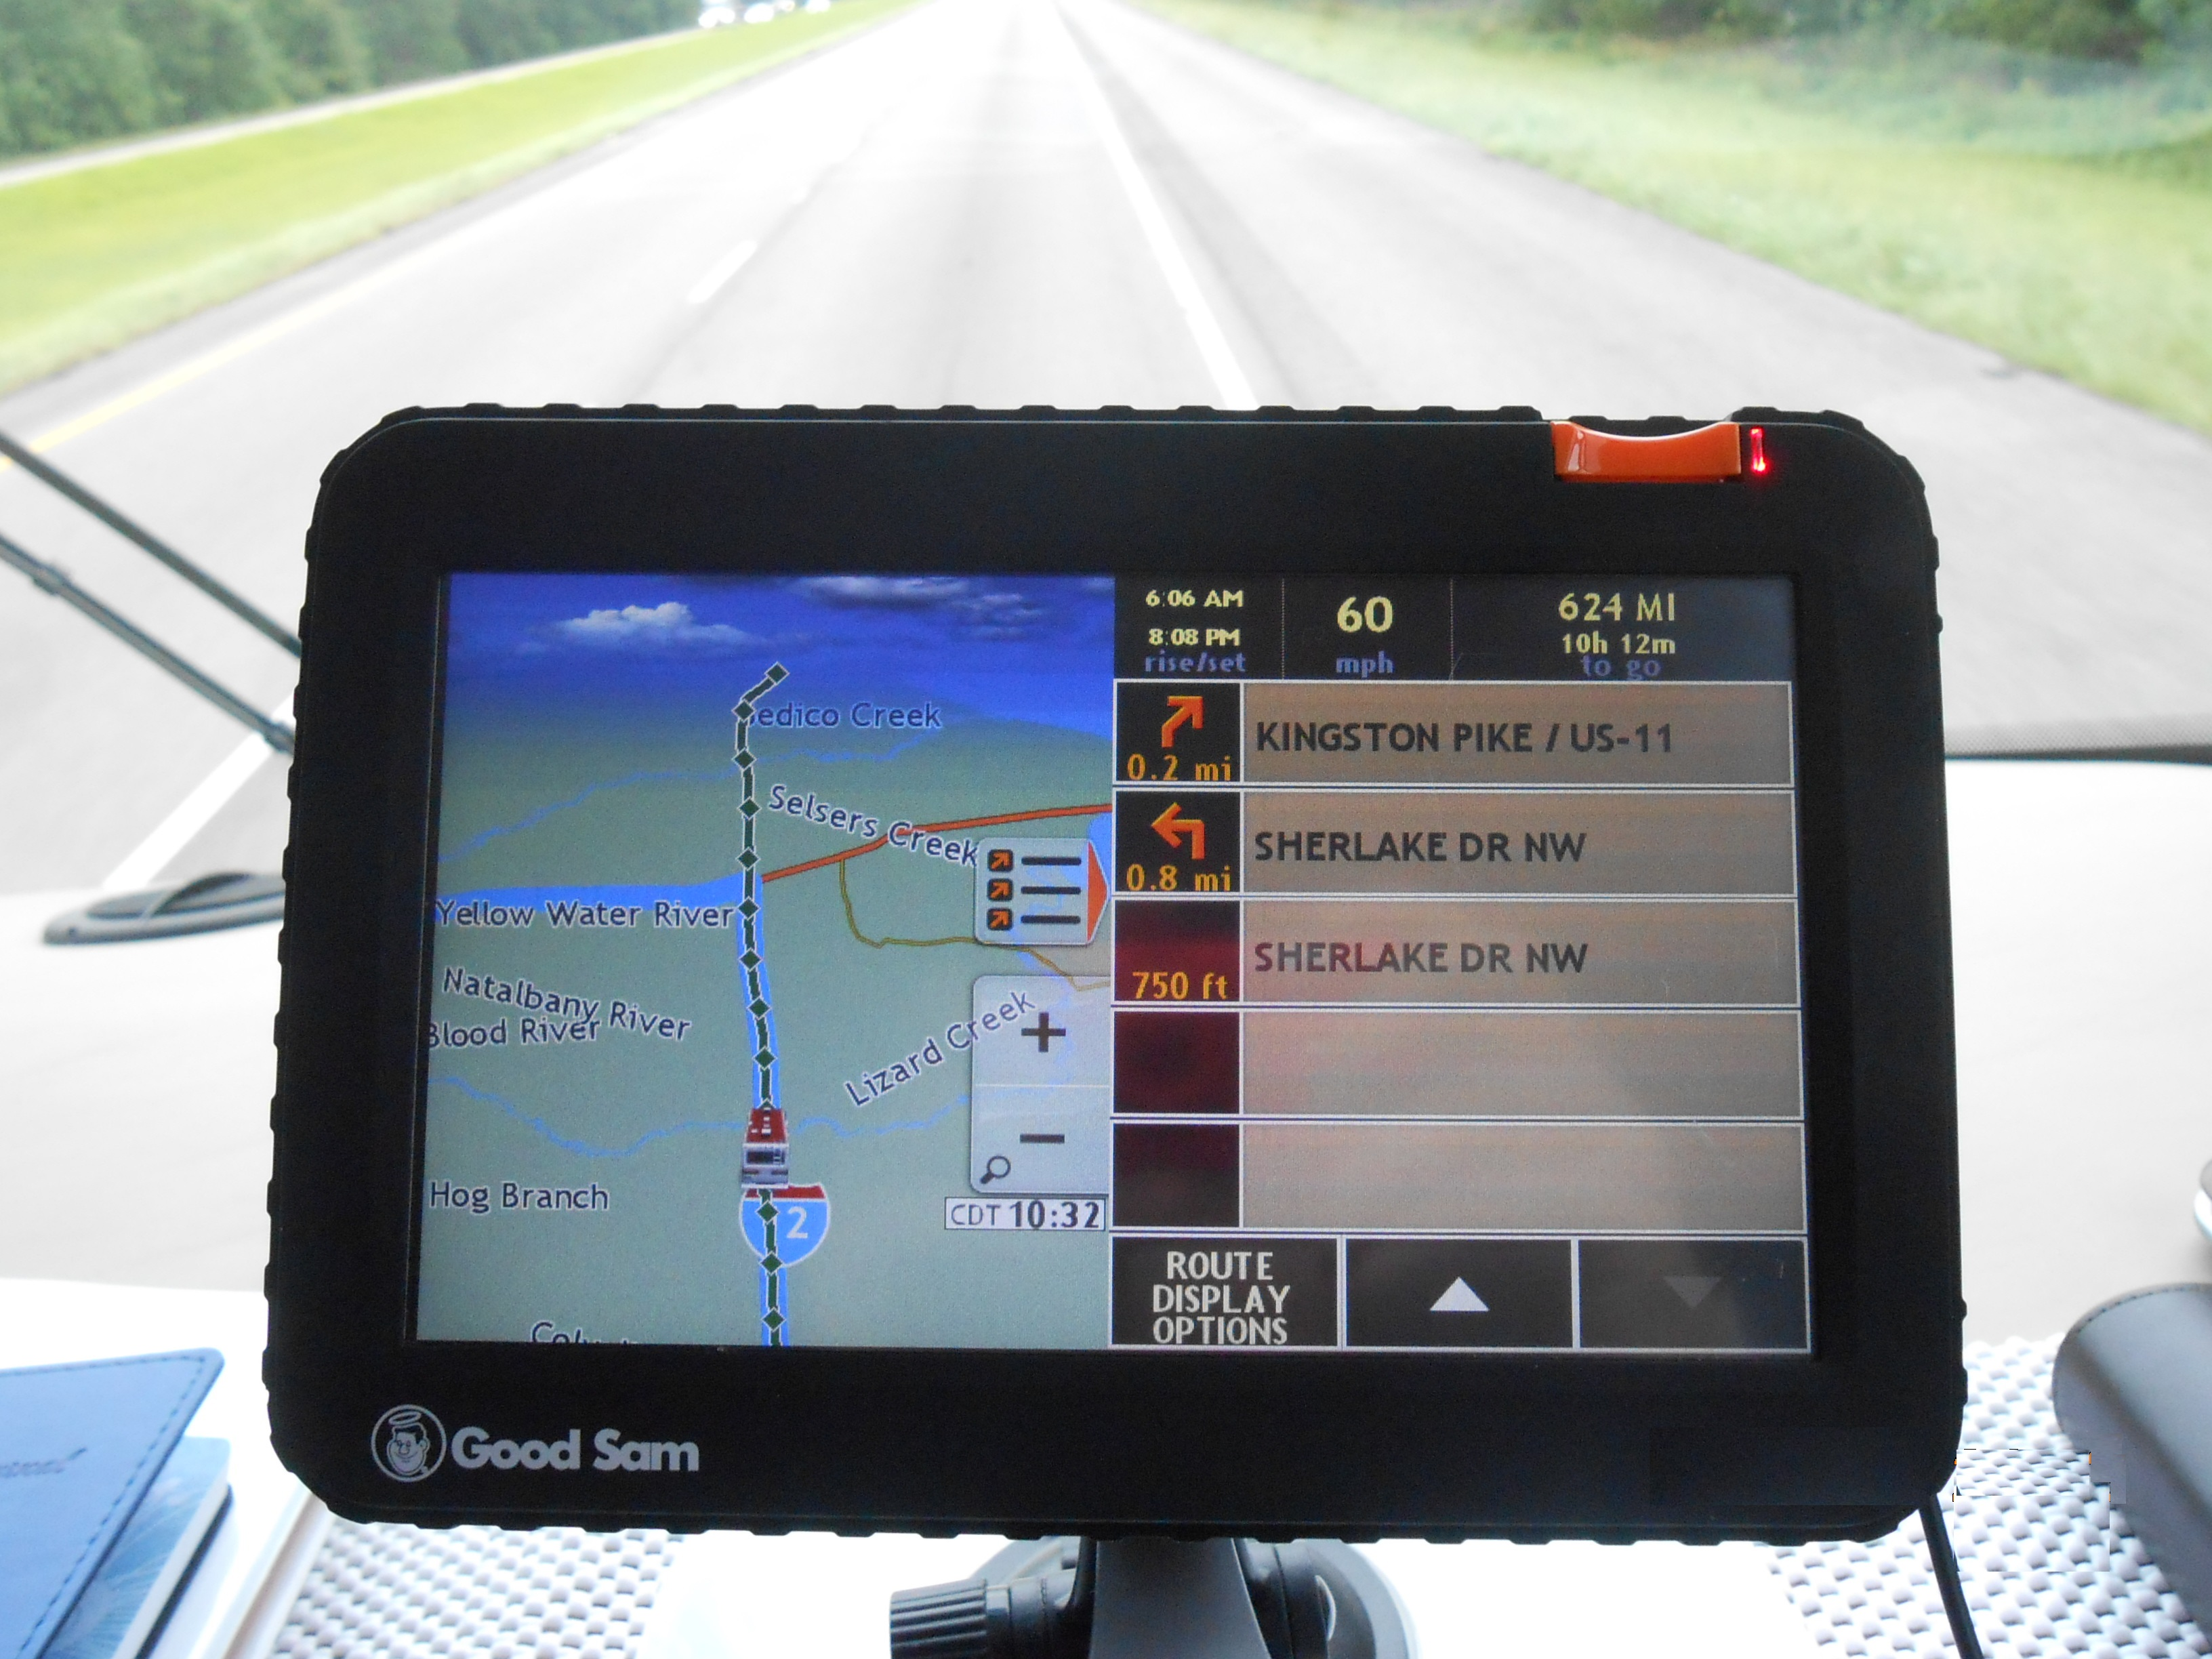 Directions GPS